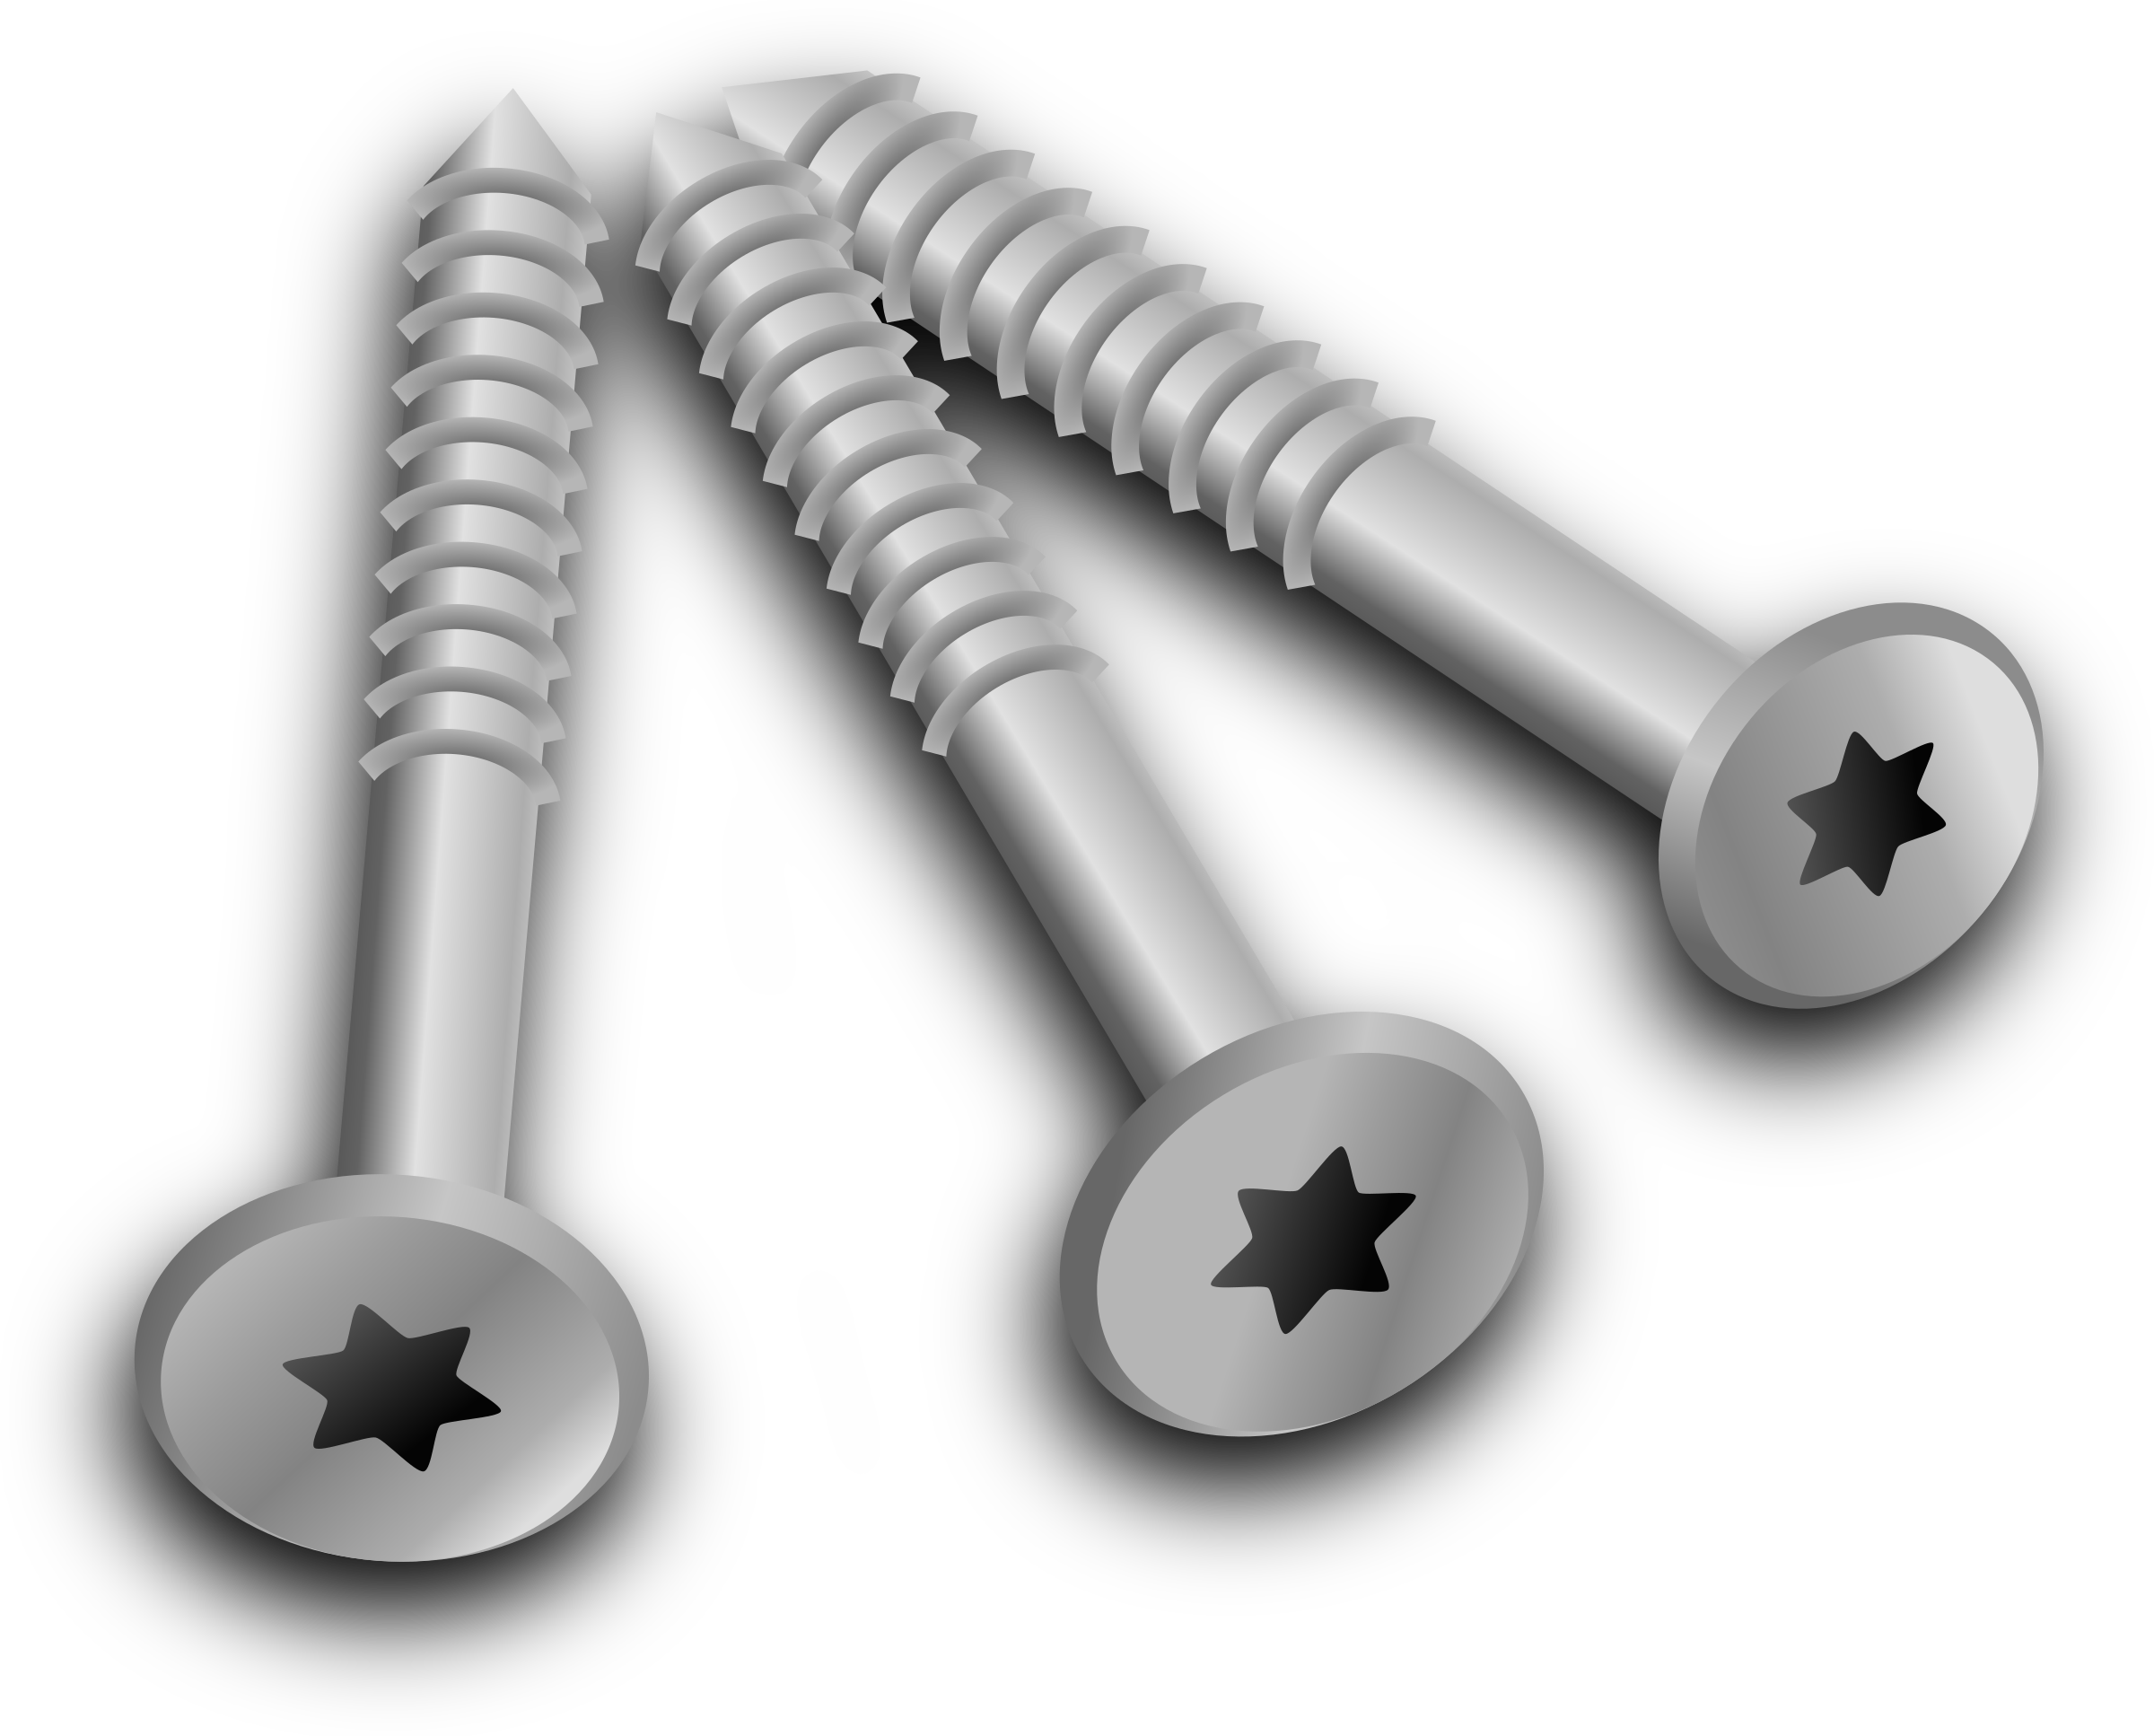 Clipart - 3 screws